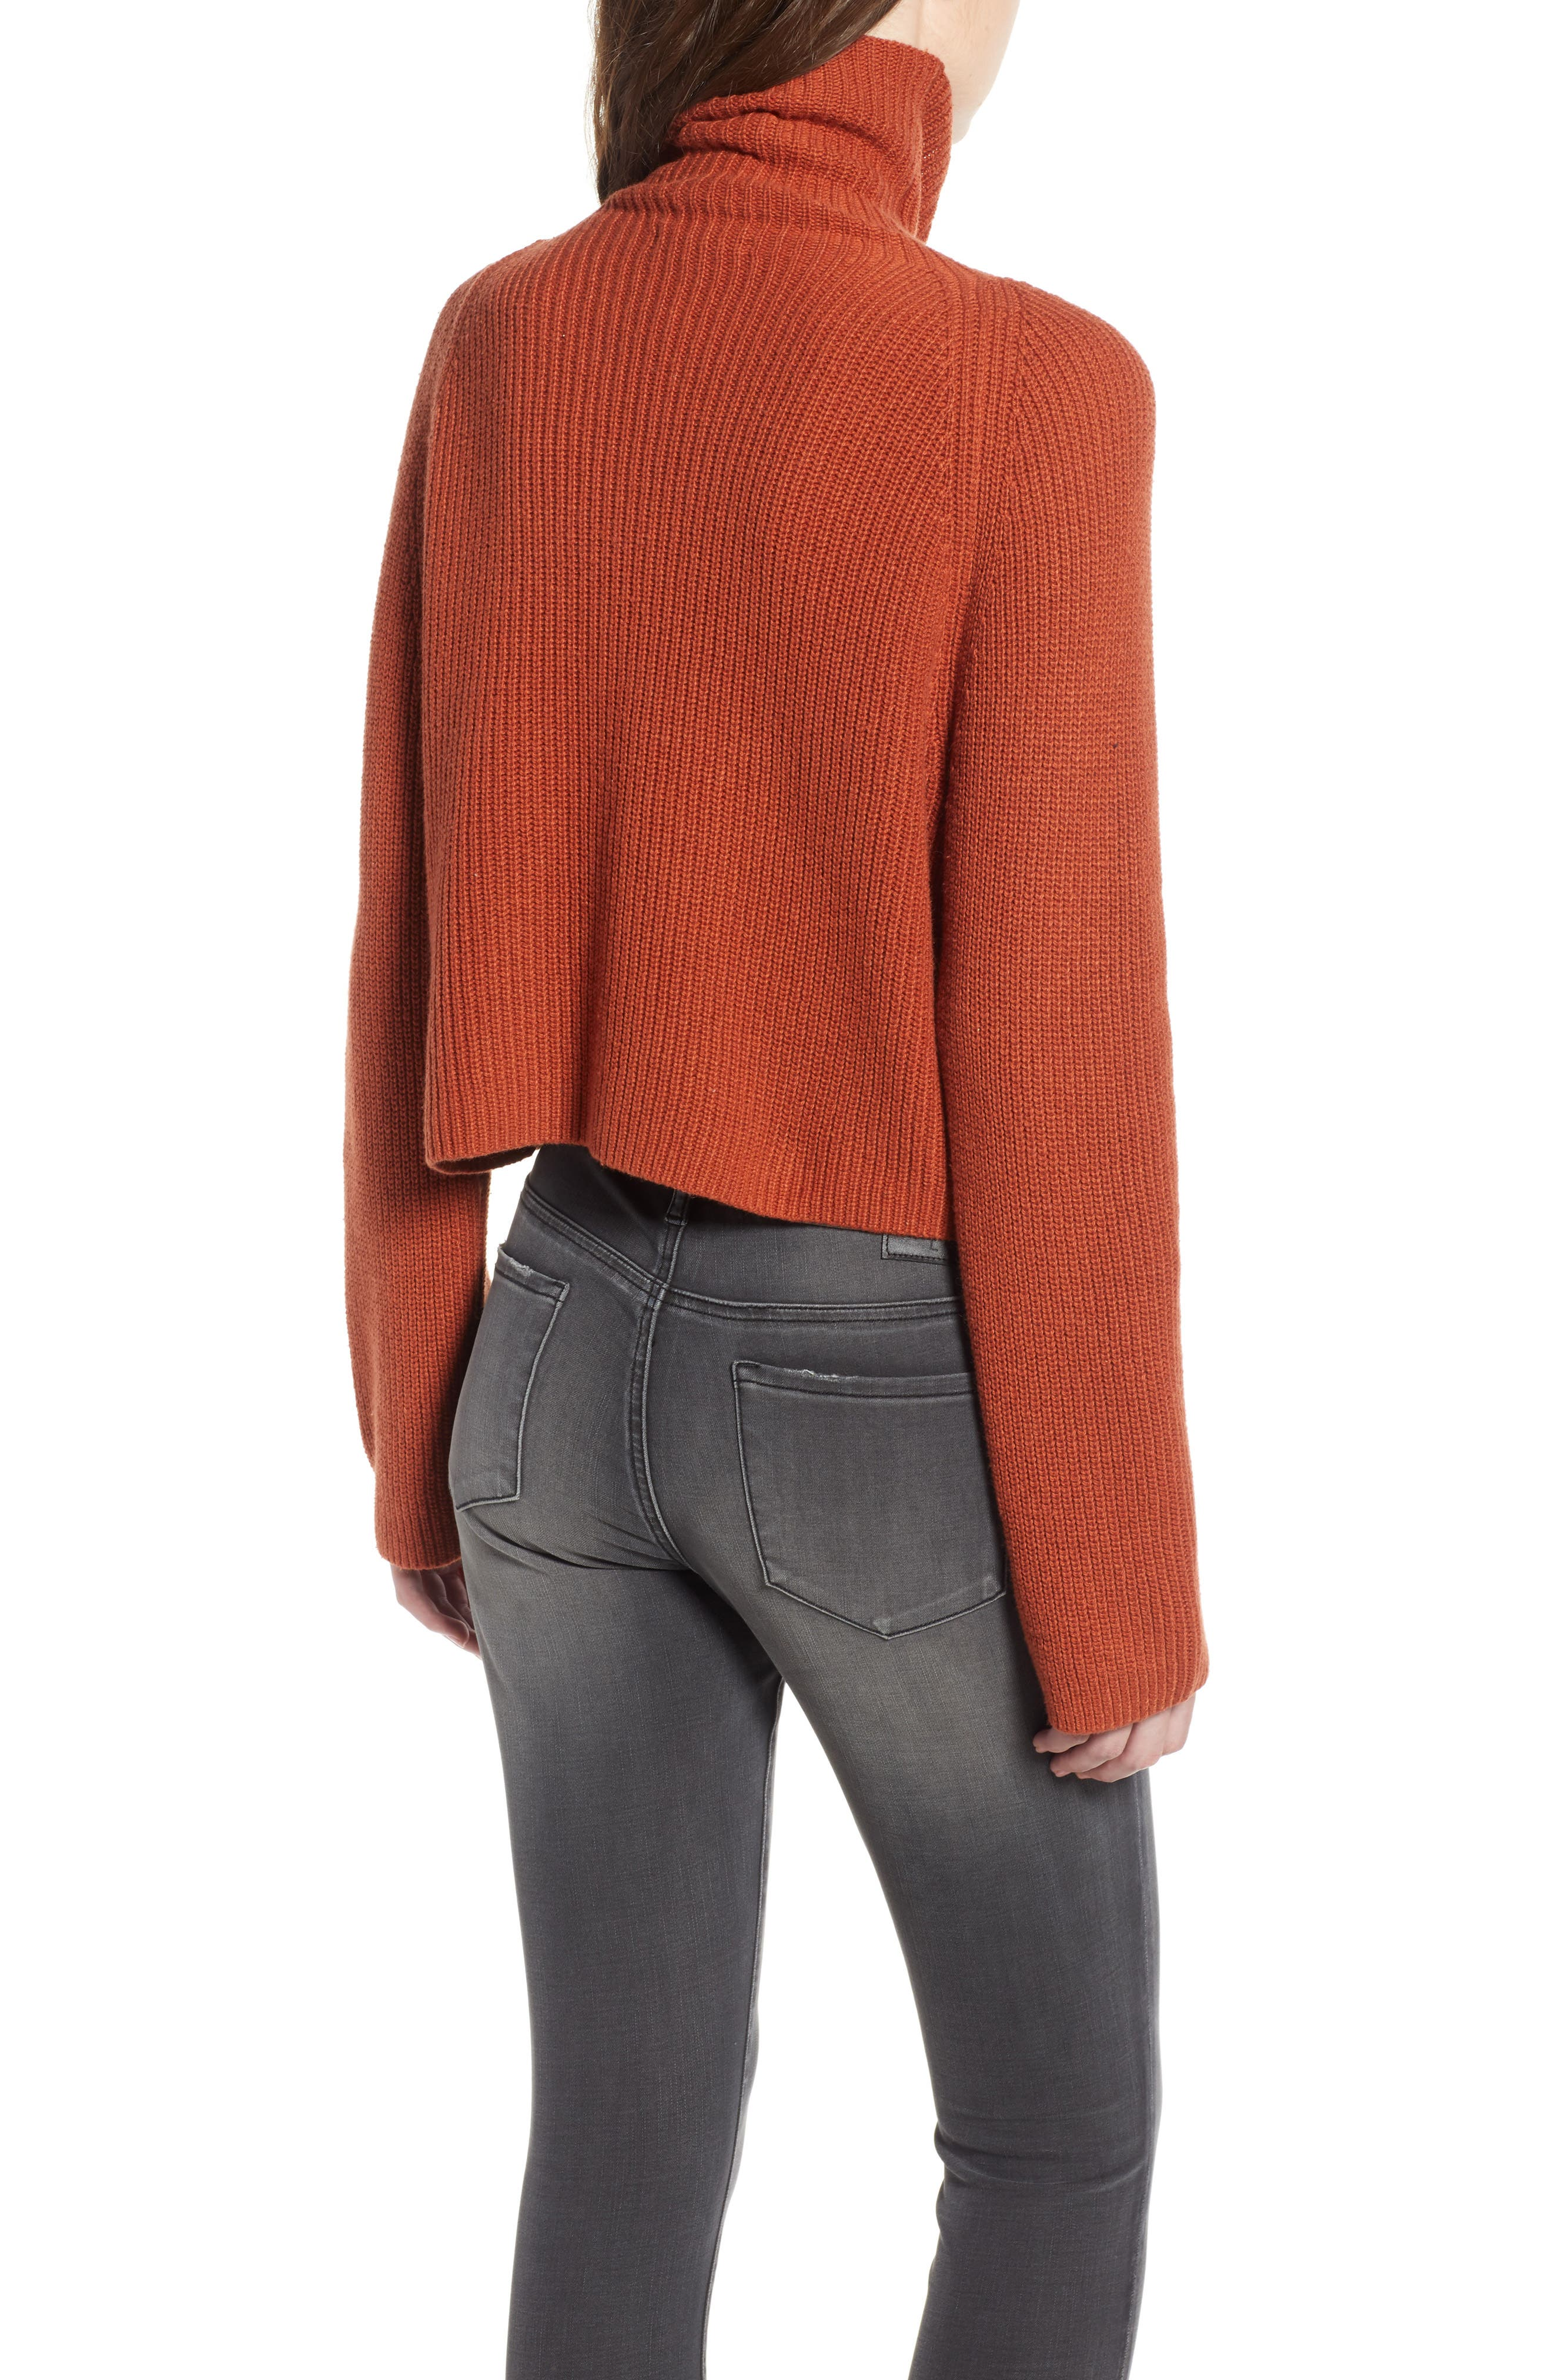 LEITH, Transfer Stitch Turtleneck Sweater, Alternate thumbnail 2, color, 210